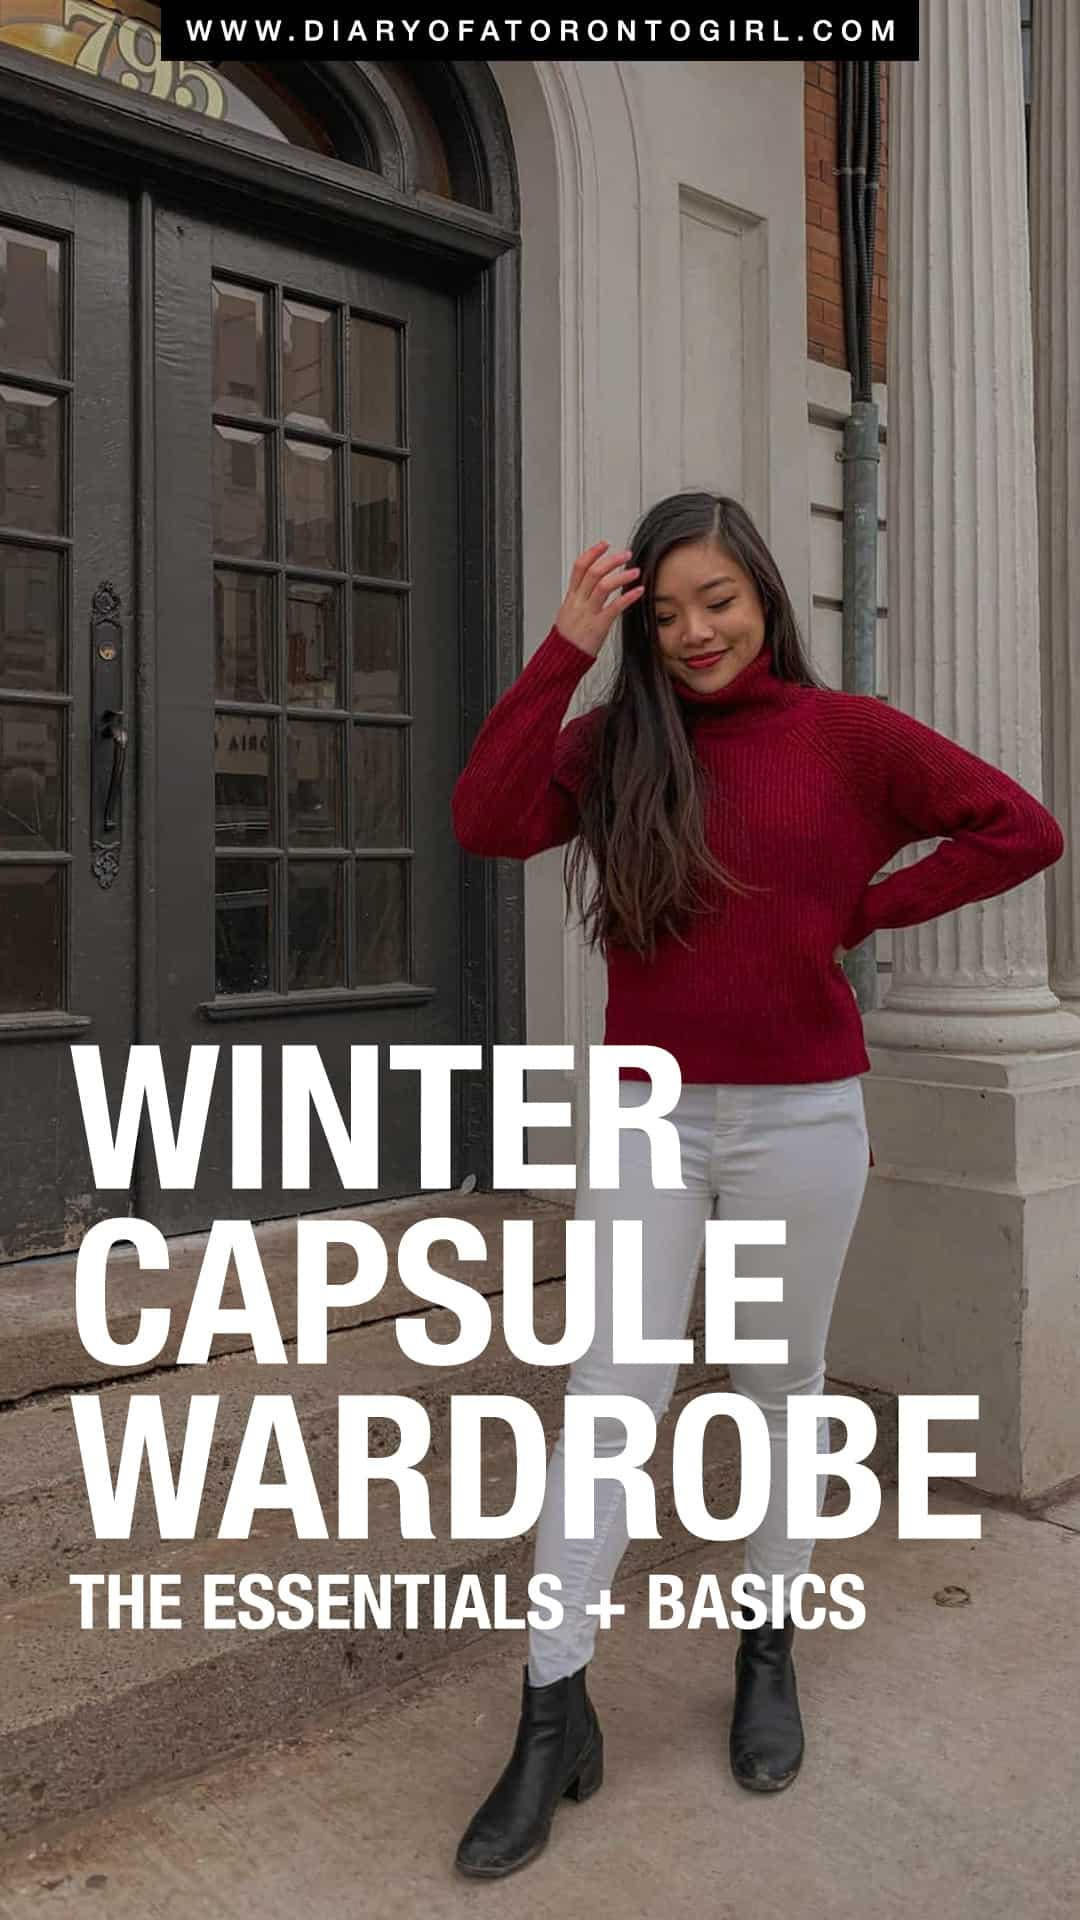 Winter capsule wardrobe essentials you absolutely must have in your closet, especially for Canadian weather. These capsule pieces are timeless for your wardrobe!